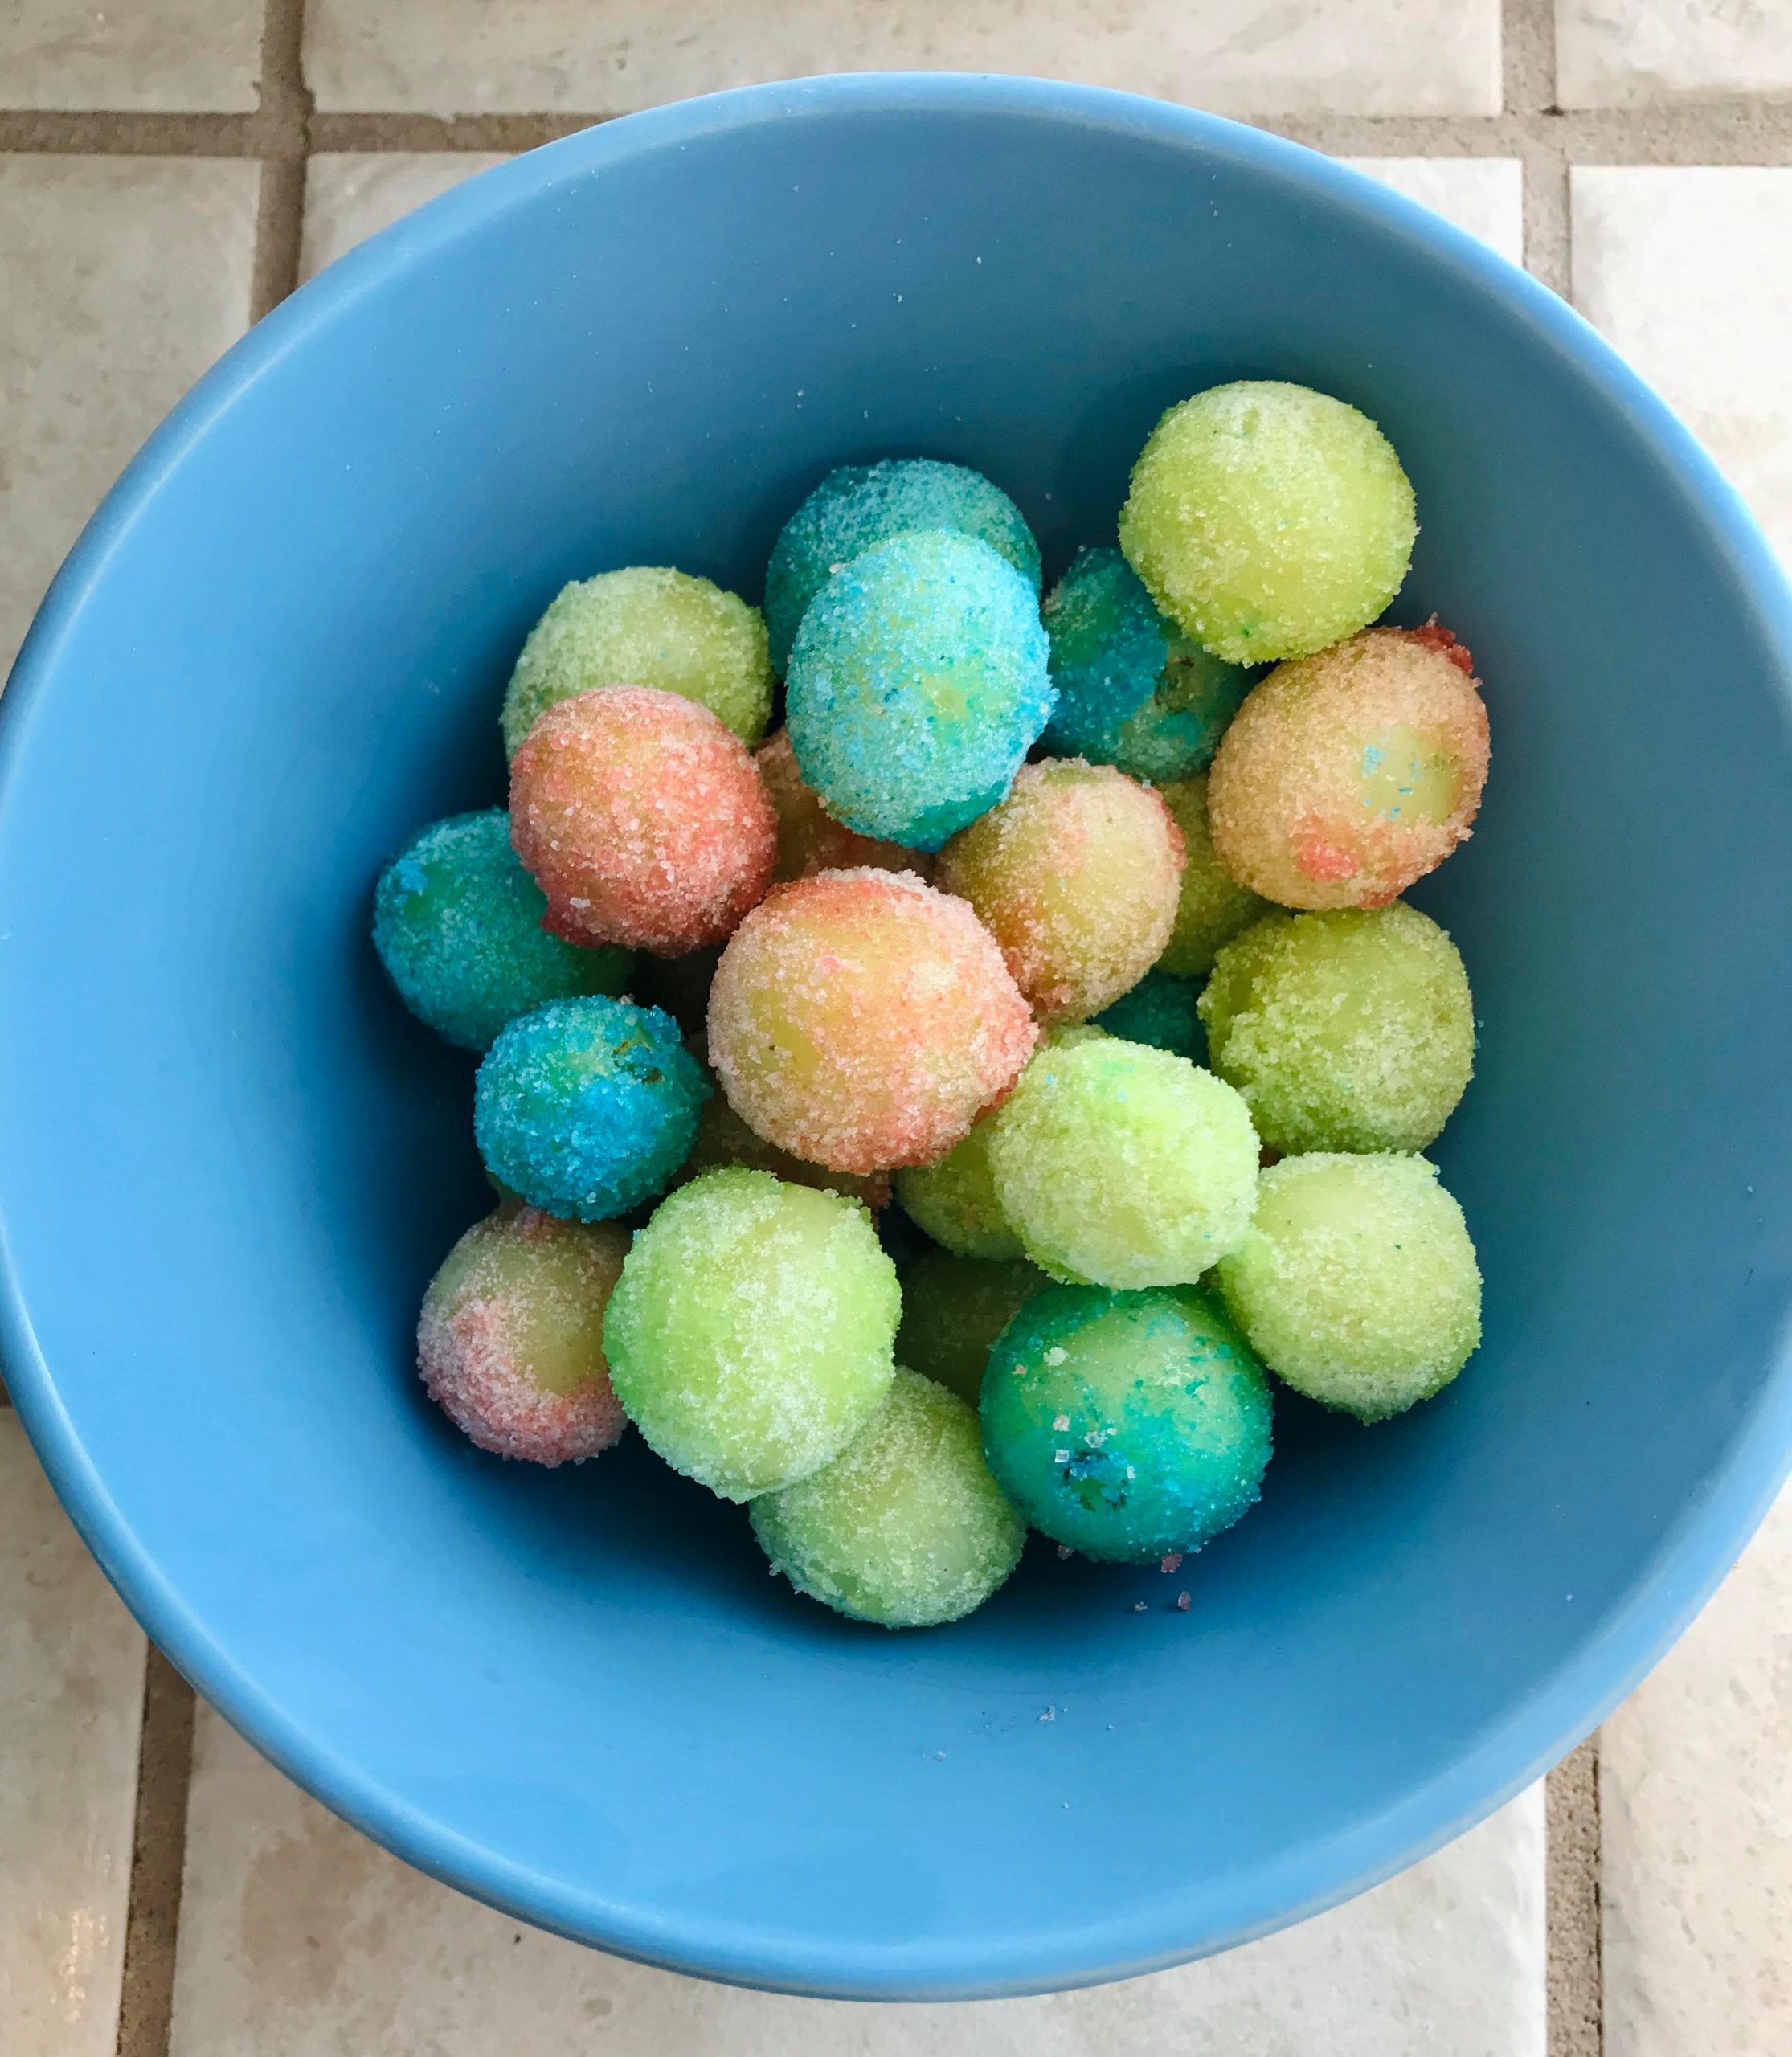 Day 7 - Sour Patch Grapes {100 Days of Summer Fun}